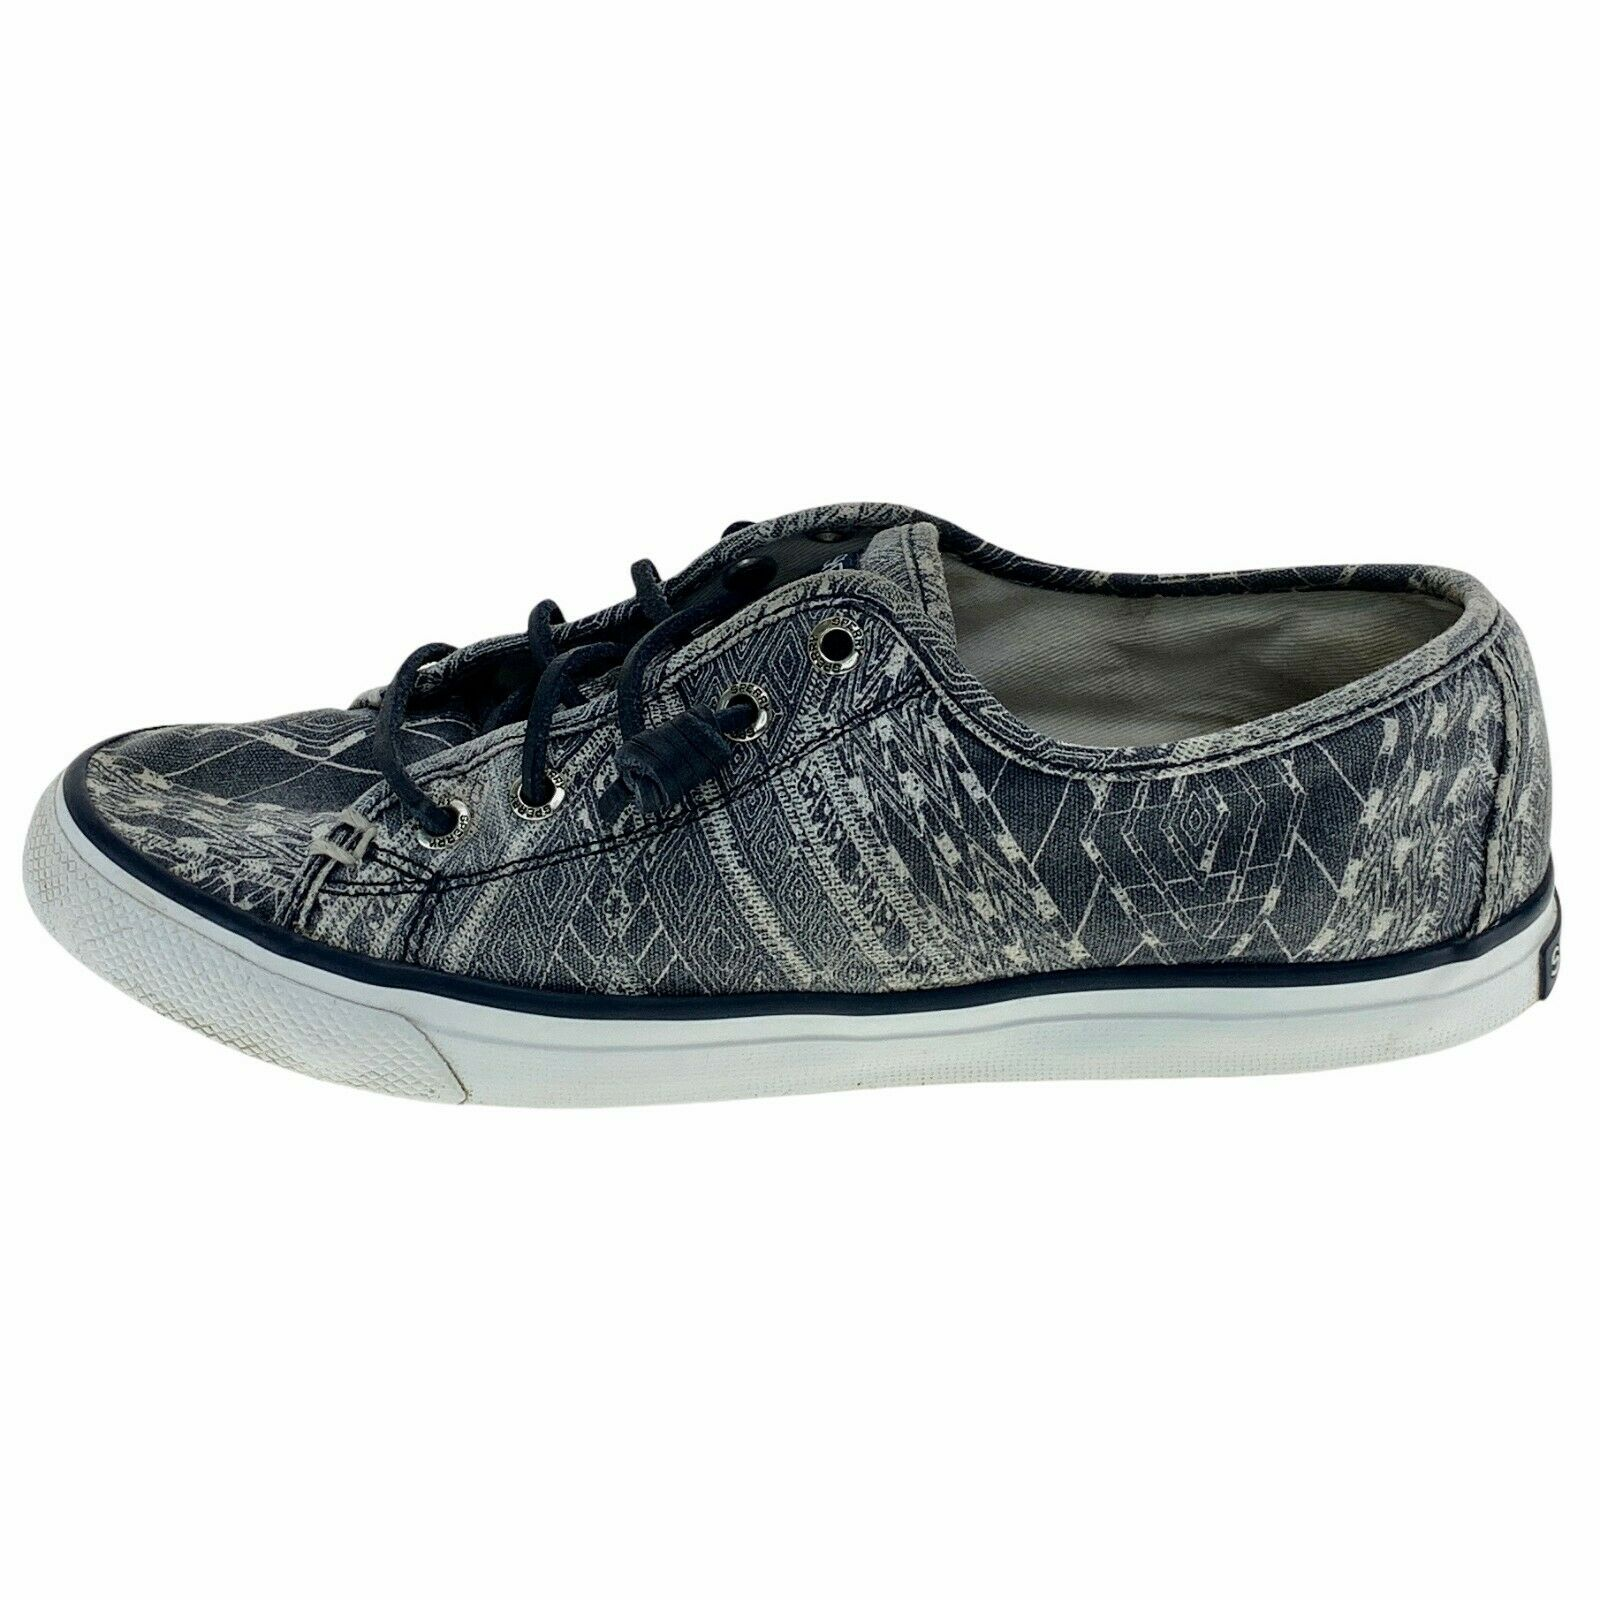 Sperry Top Sider Womens Seacoast Native STS97065 Gray Sneaker Shoes Size 6.5 M